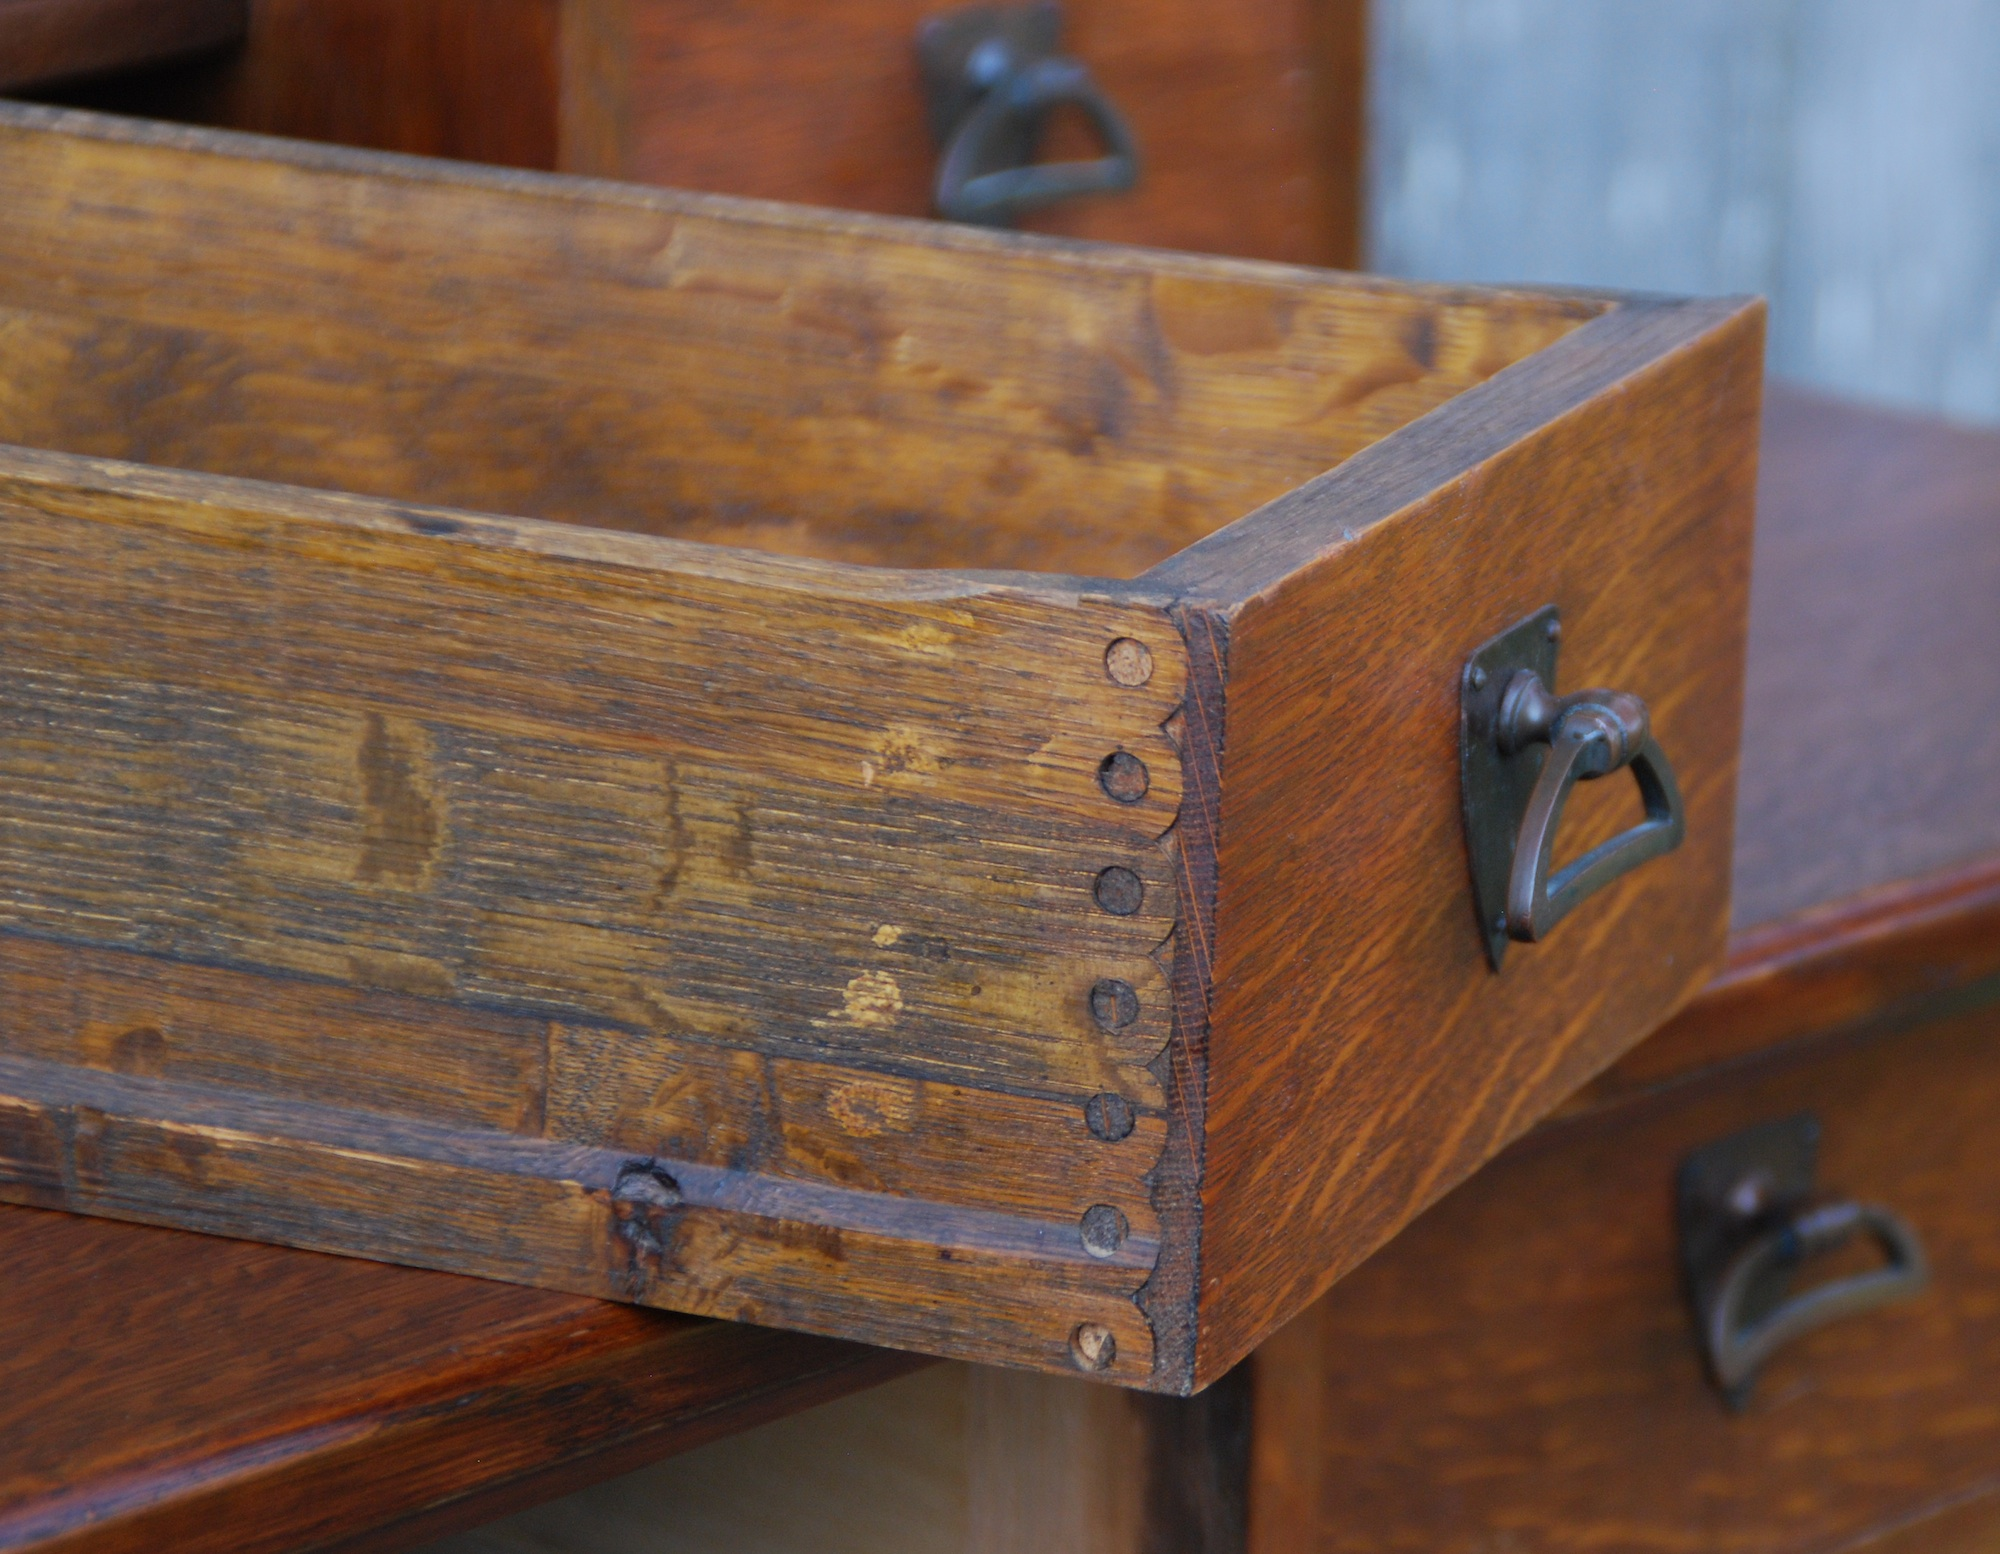 major furniture manufacturers. drawer construction detail early machine dovetail joinery not a typical made joint major furniture manufacturers